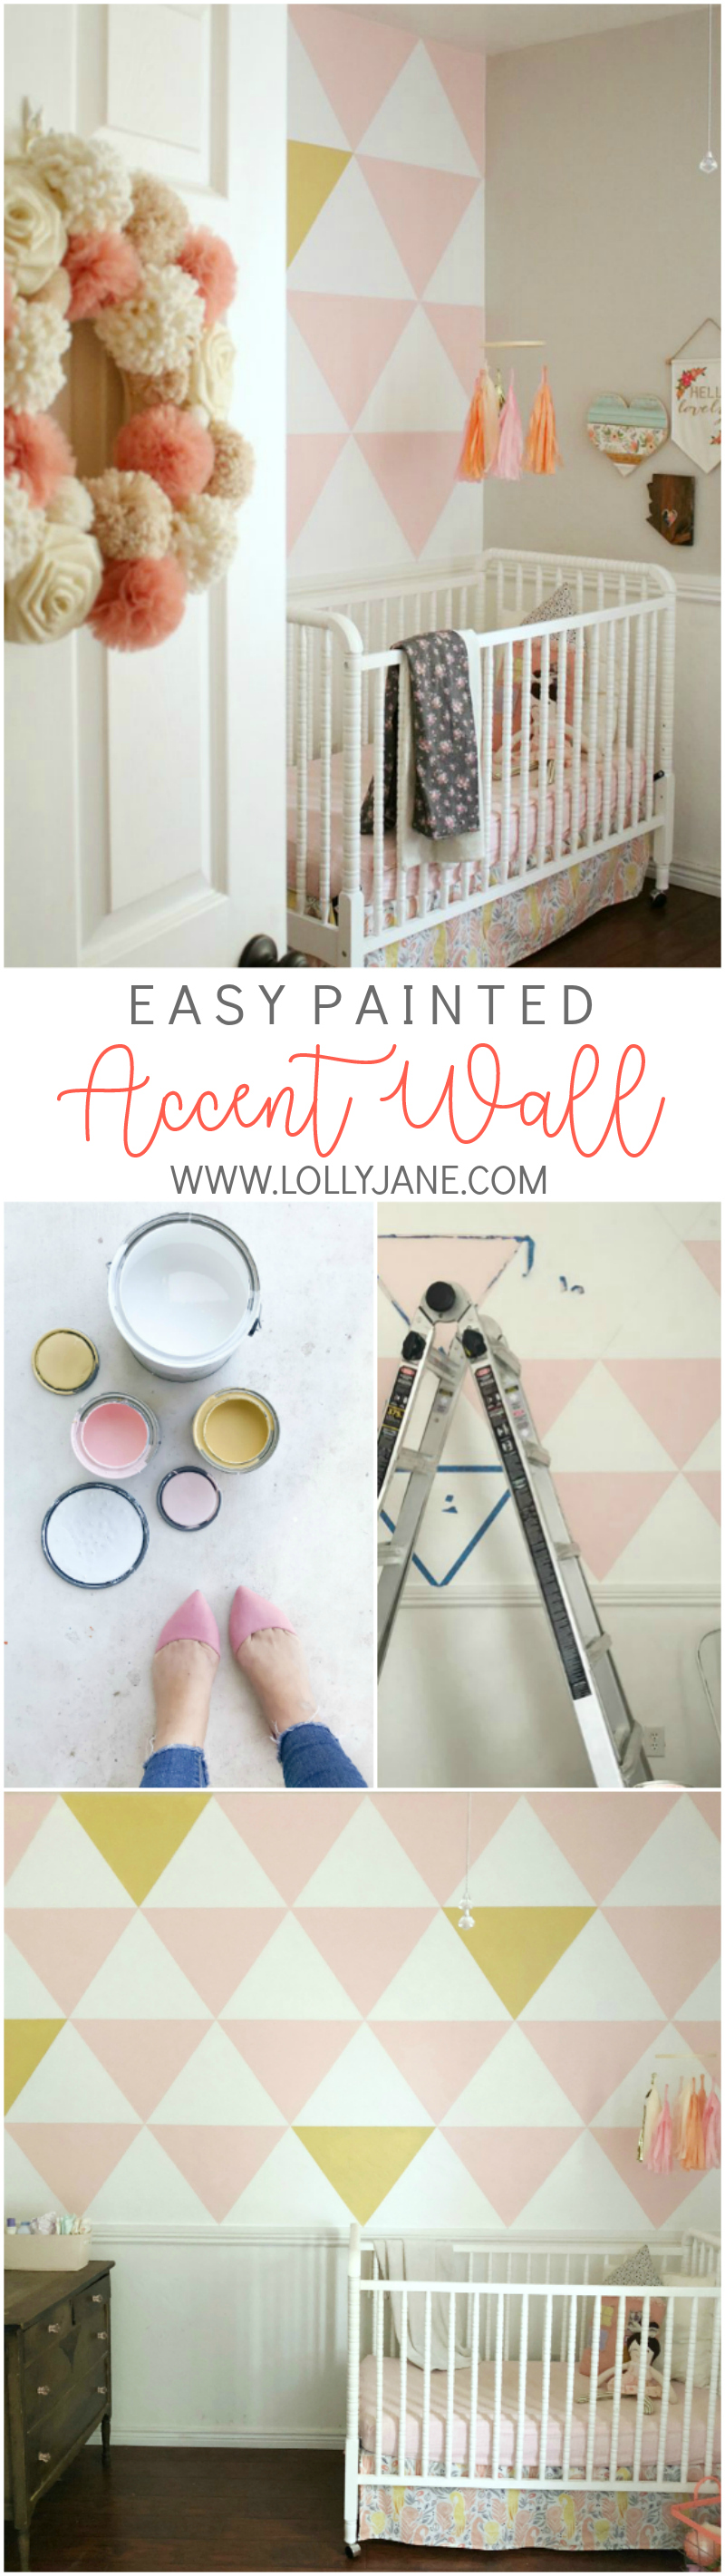 Easy painted accent wall tutorial | Love this triangle accent wall, such a pretty nursery wall! Follow this easy to replicate painted accent wall to create a focal wall in your own home!